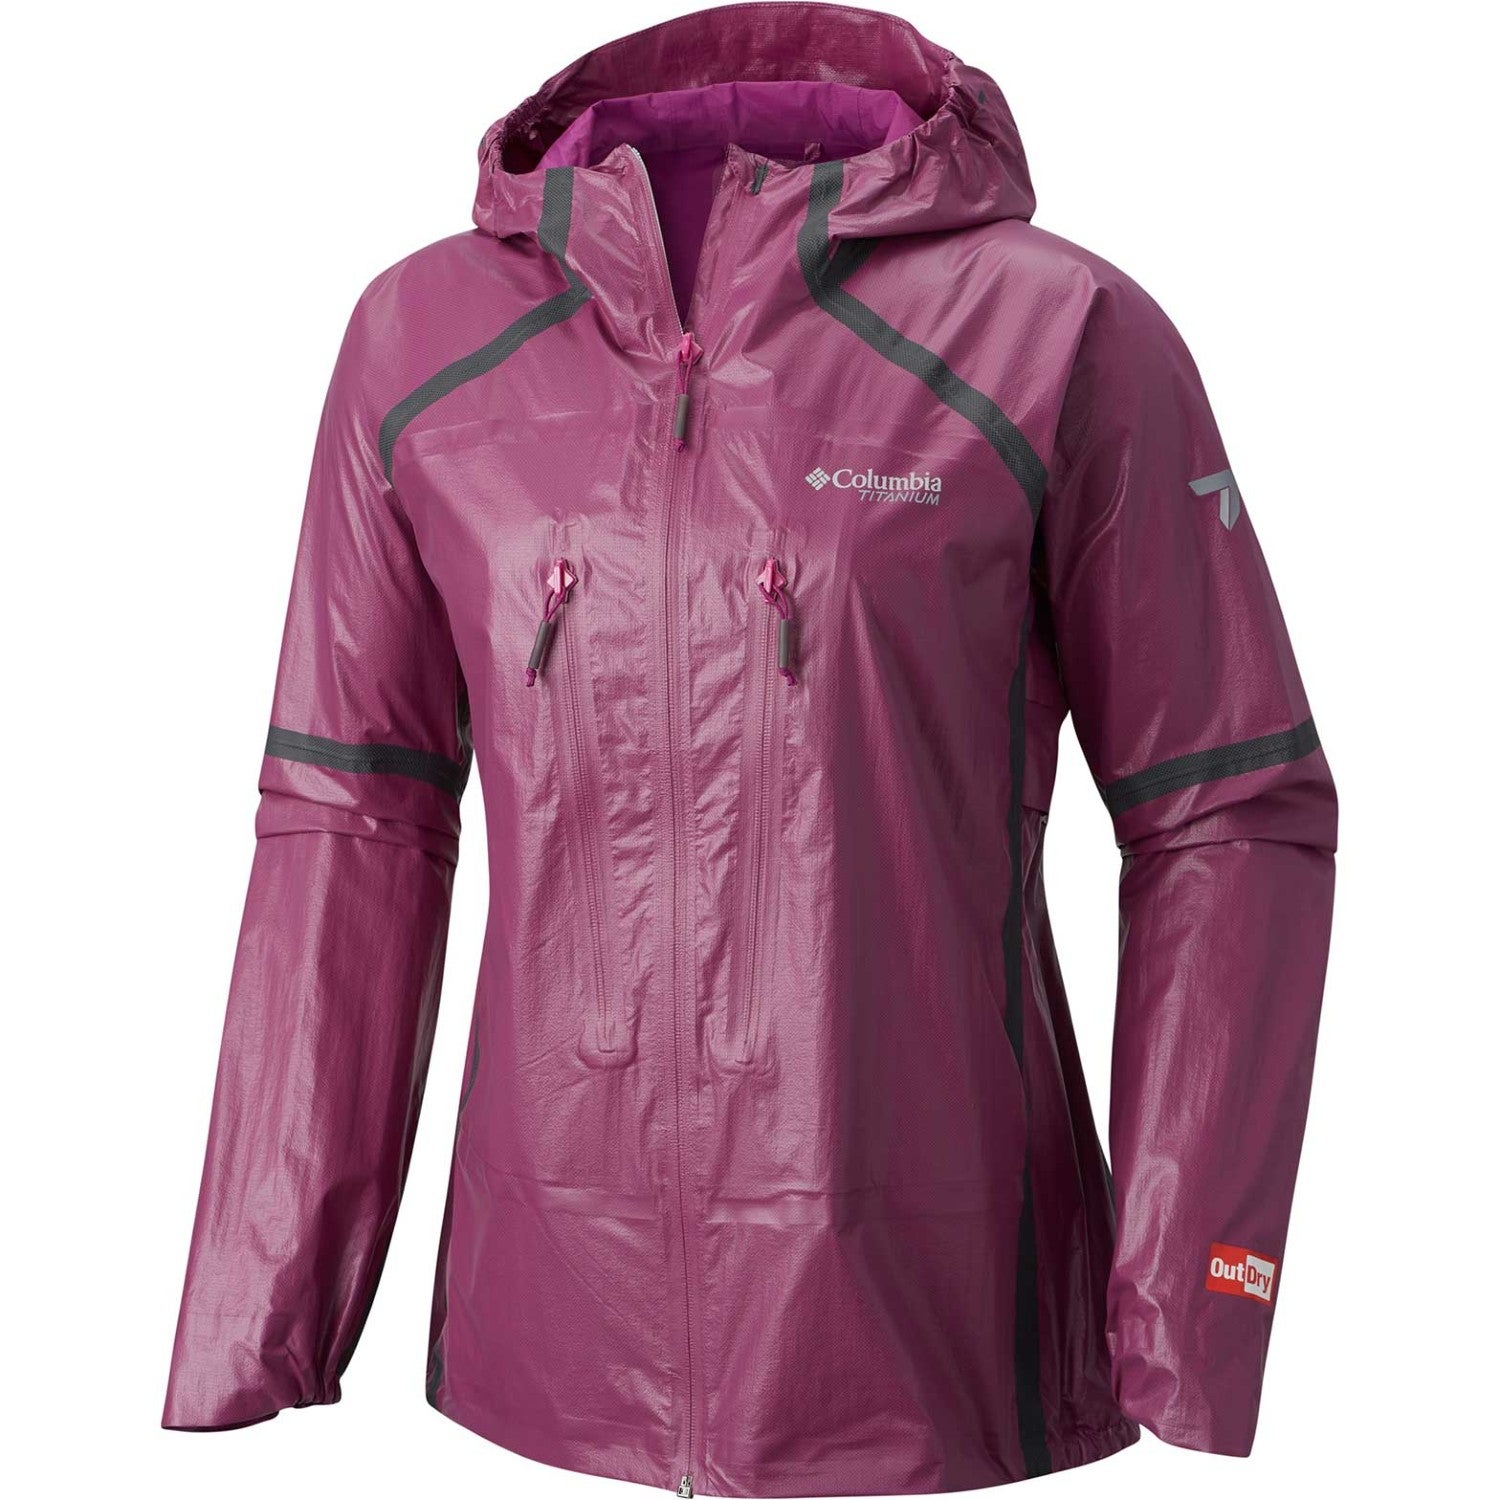 Columbia Outdry Ex Featherweight Shell Jacke available from